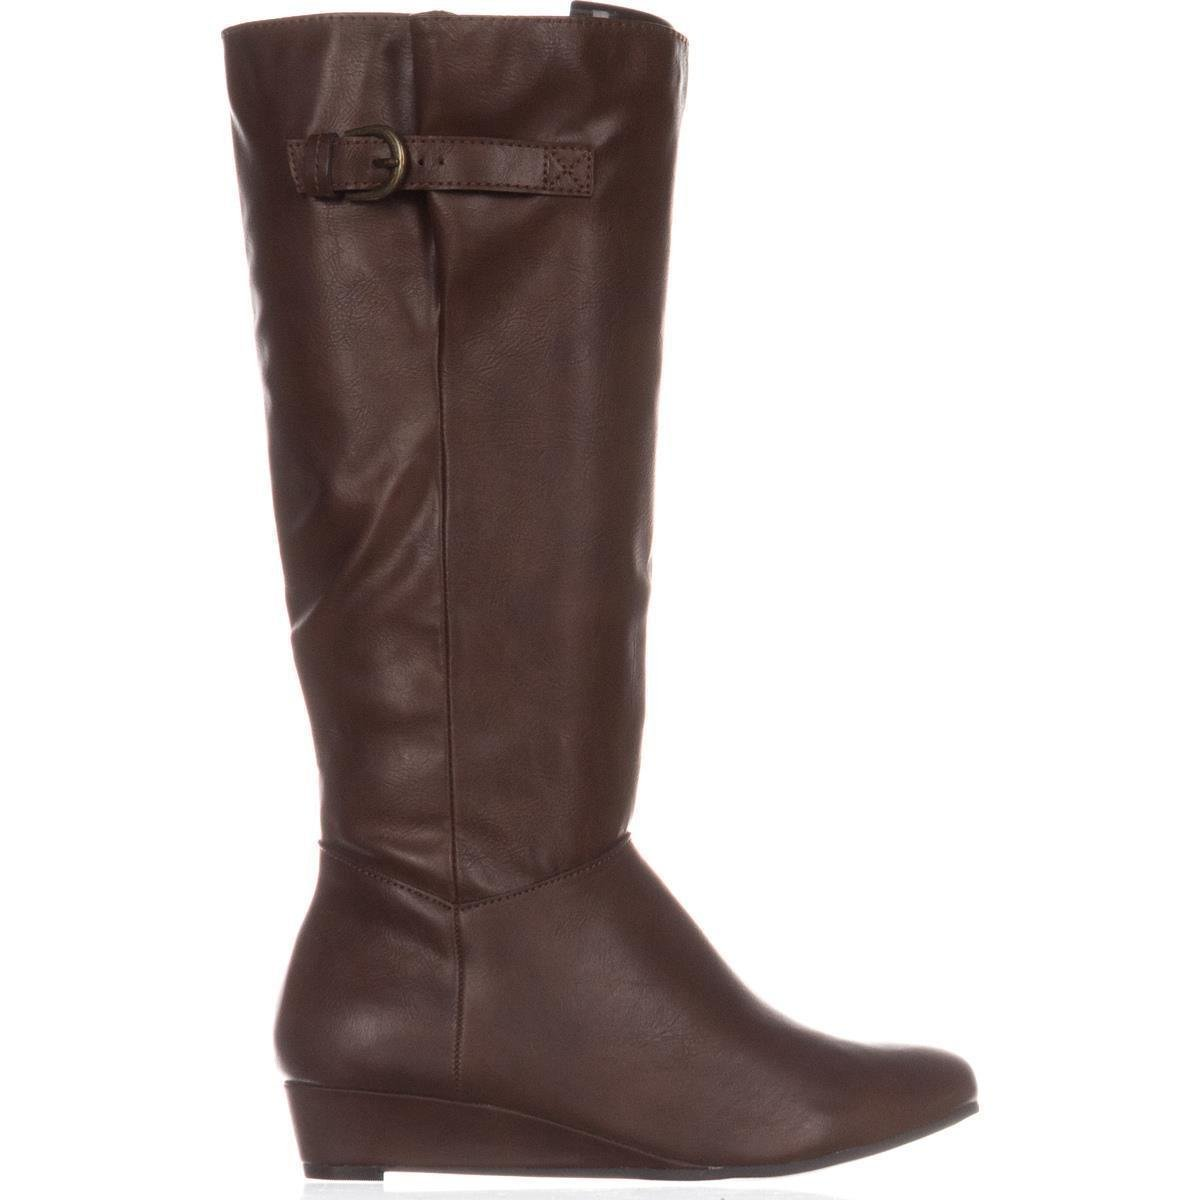 d0a44a057506 Womens Rainne Wedge Riding Boots Cognac 9 M US